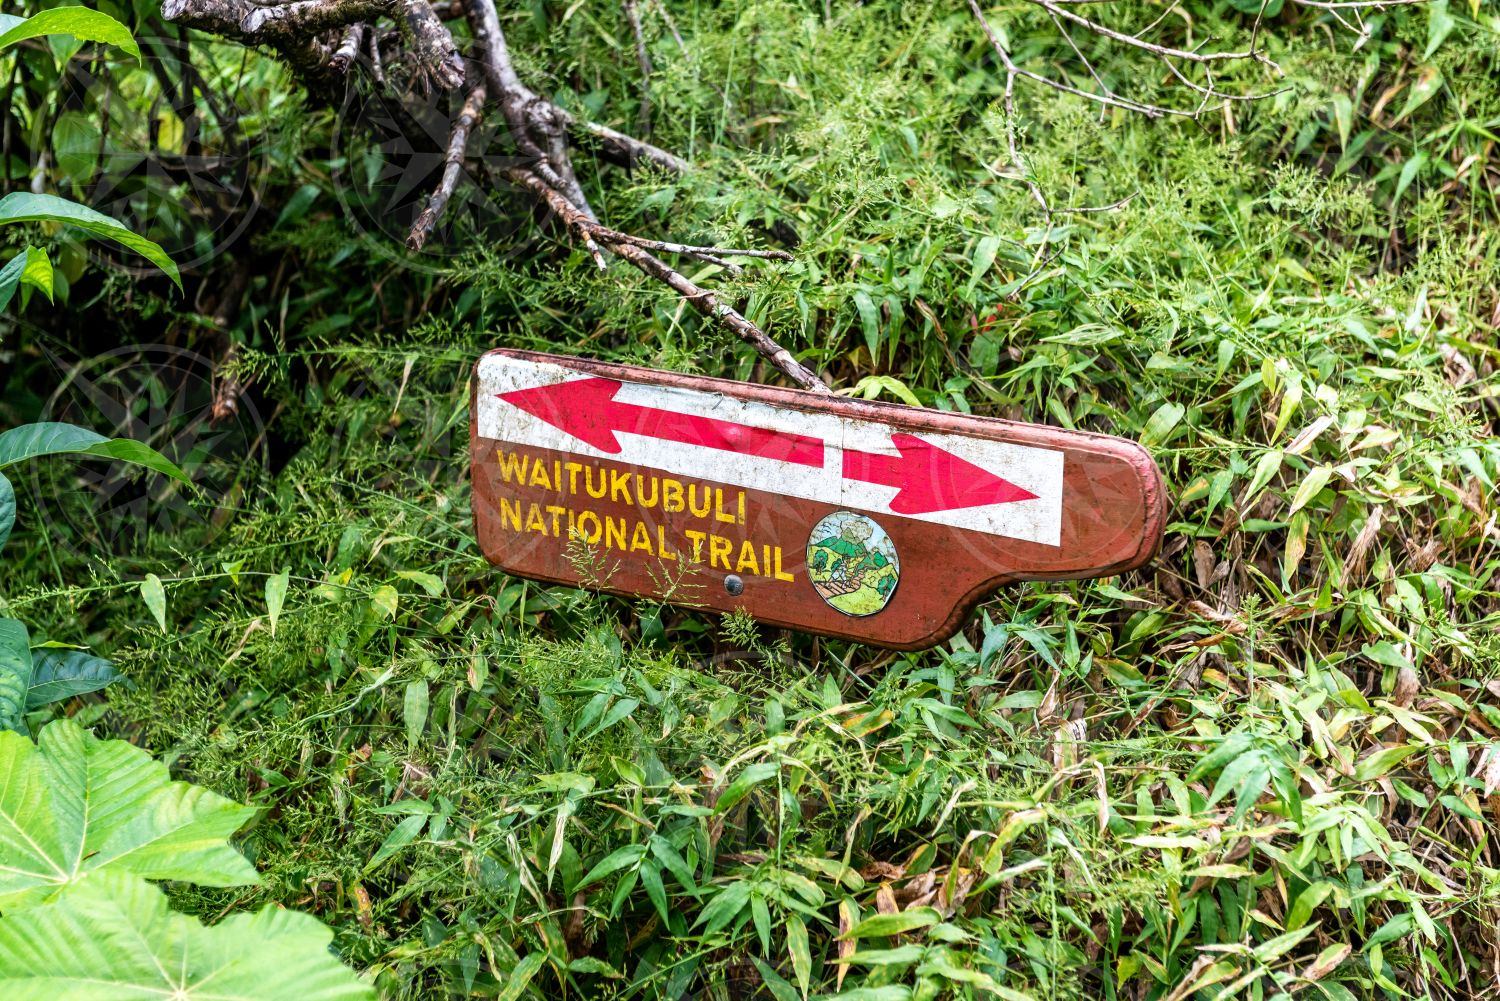 Waitukubuli National Trail sign